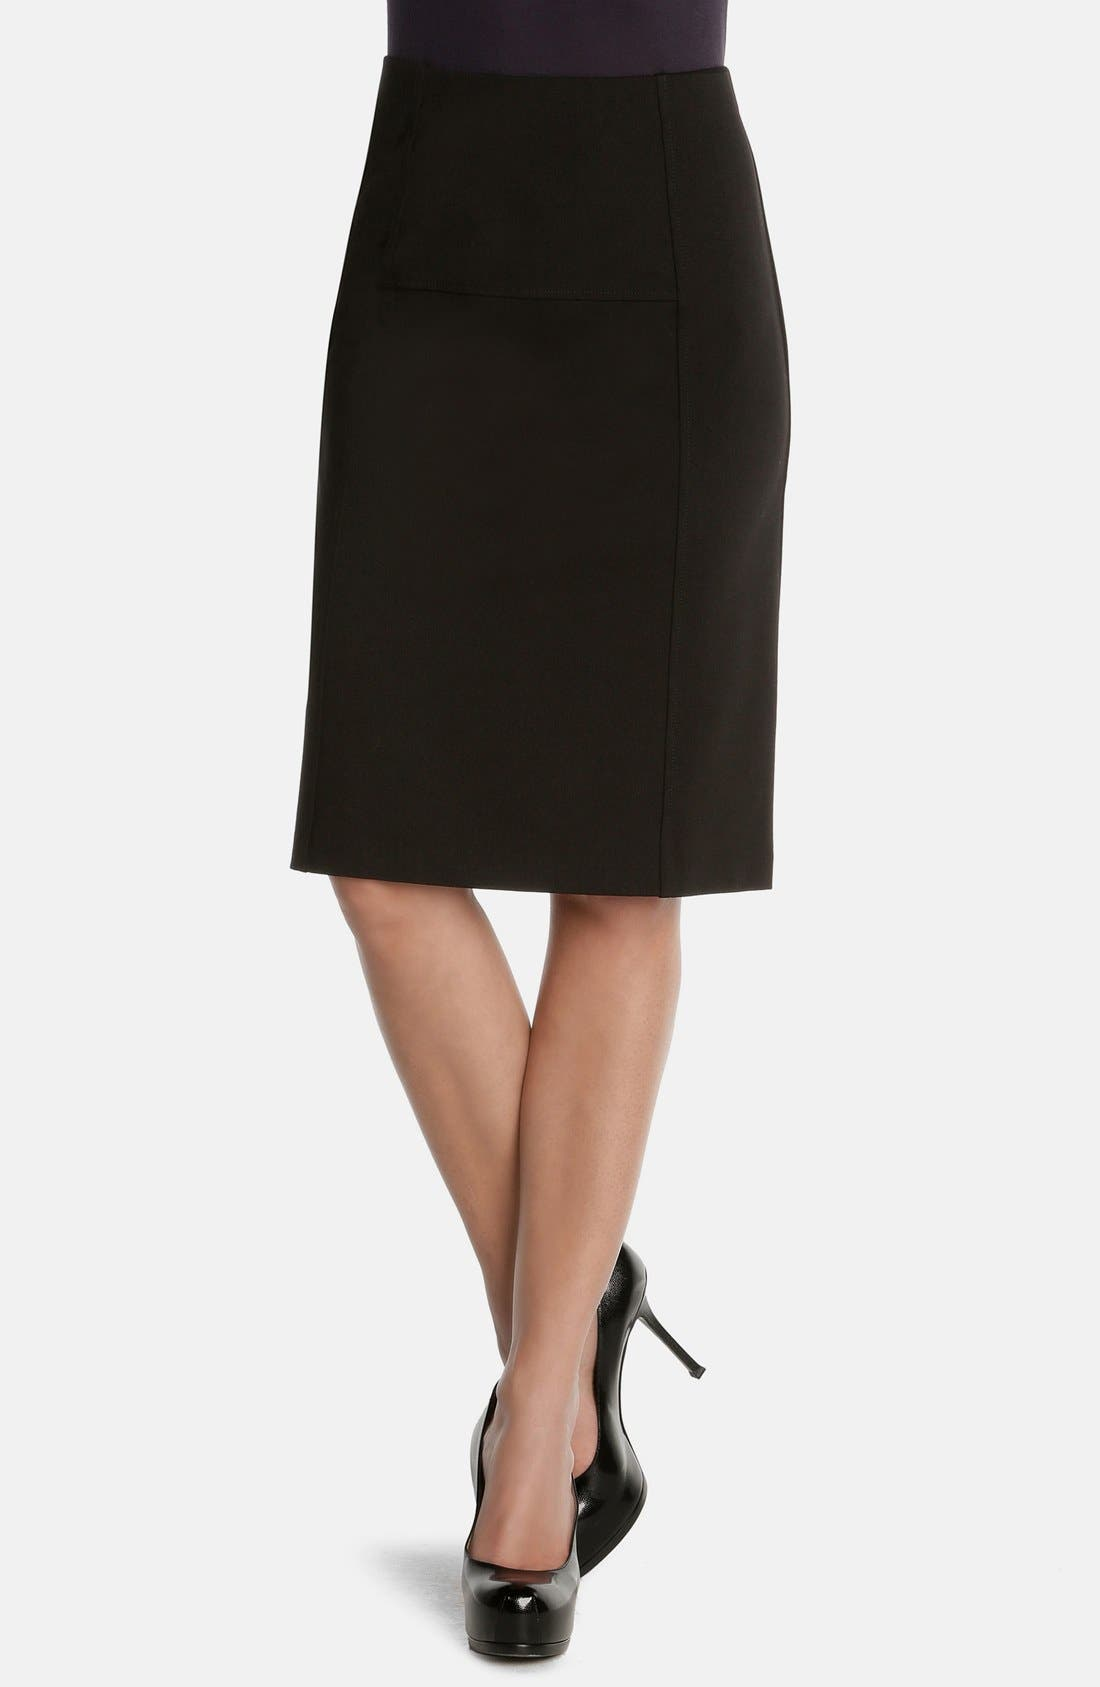 Alternate Image 1 Selected - NIC+ZOE 'New Flirt' Ponte Knit Skirt